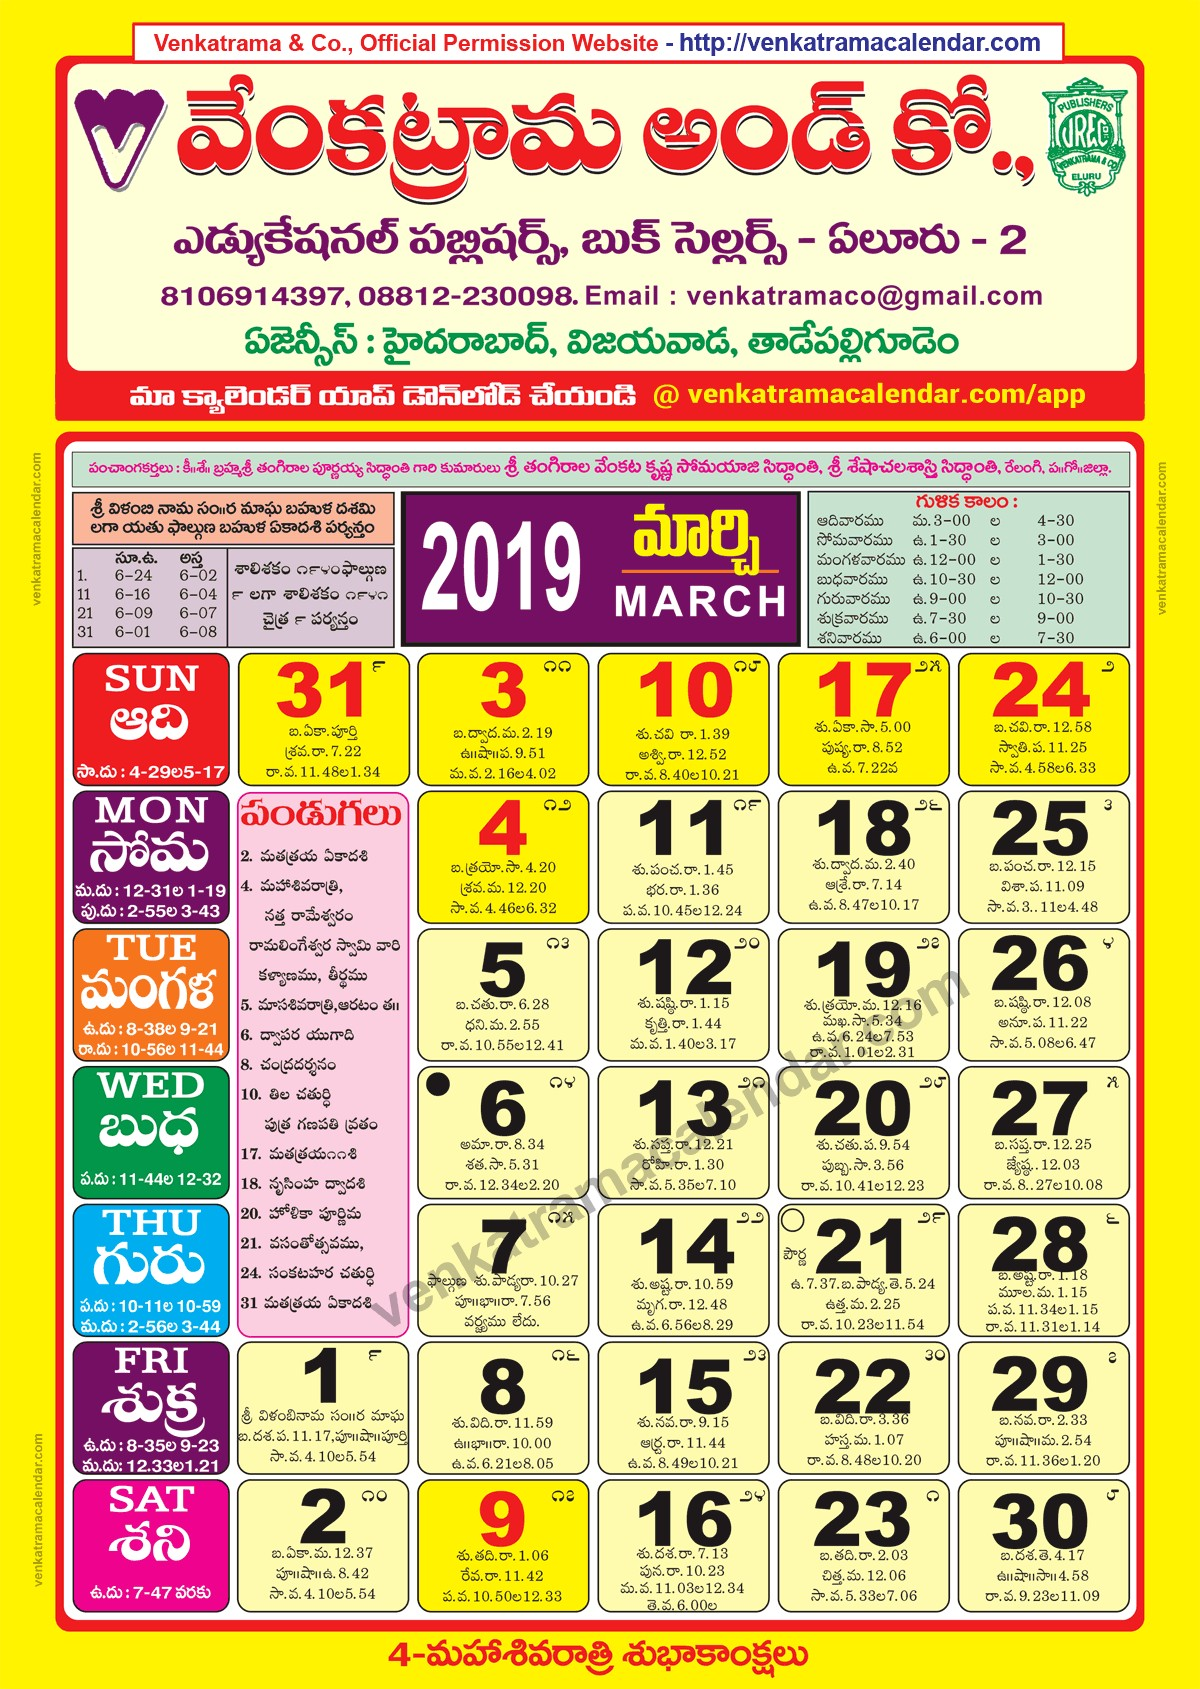 March Calendar 2019 Más Recientemente Liberado Venkatrama Co 2019 March Telugu Calendar Colour Of March Calendar 2019 Más Recientes March 2019 Wall Calendar Colorful Sketch Horizontal Template Letter